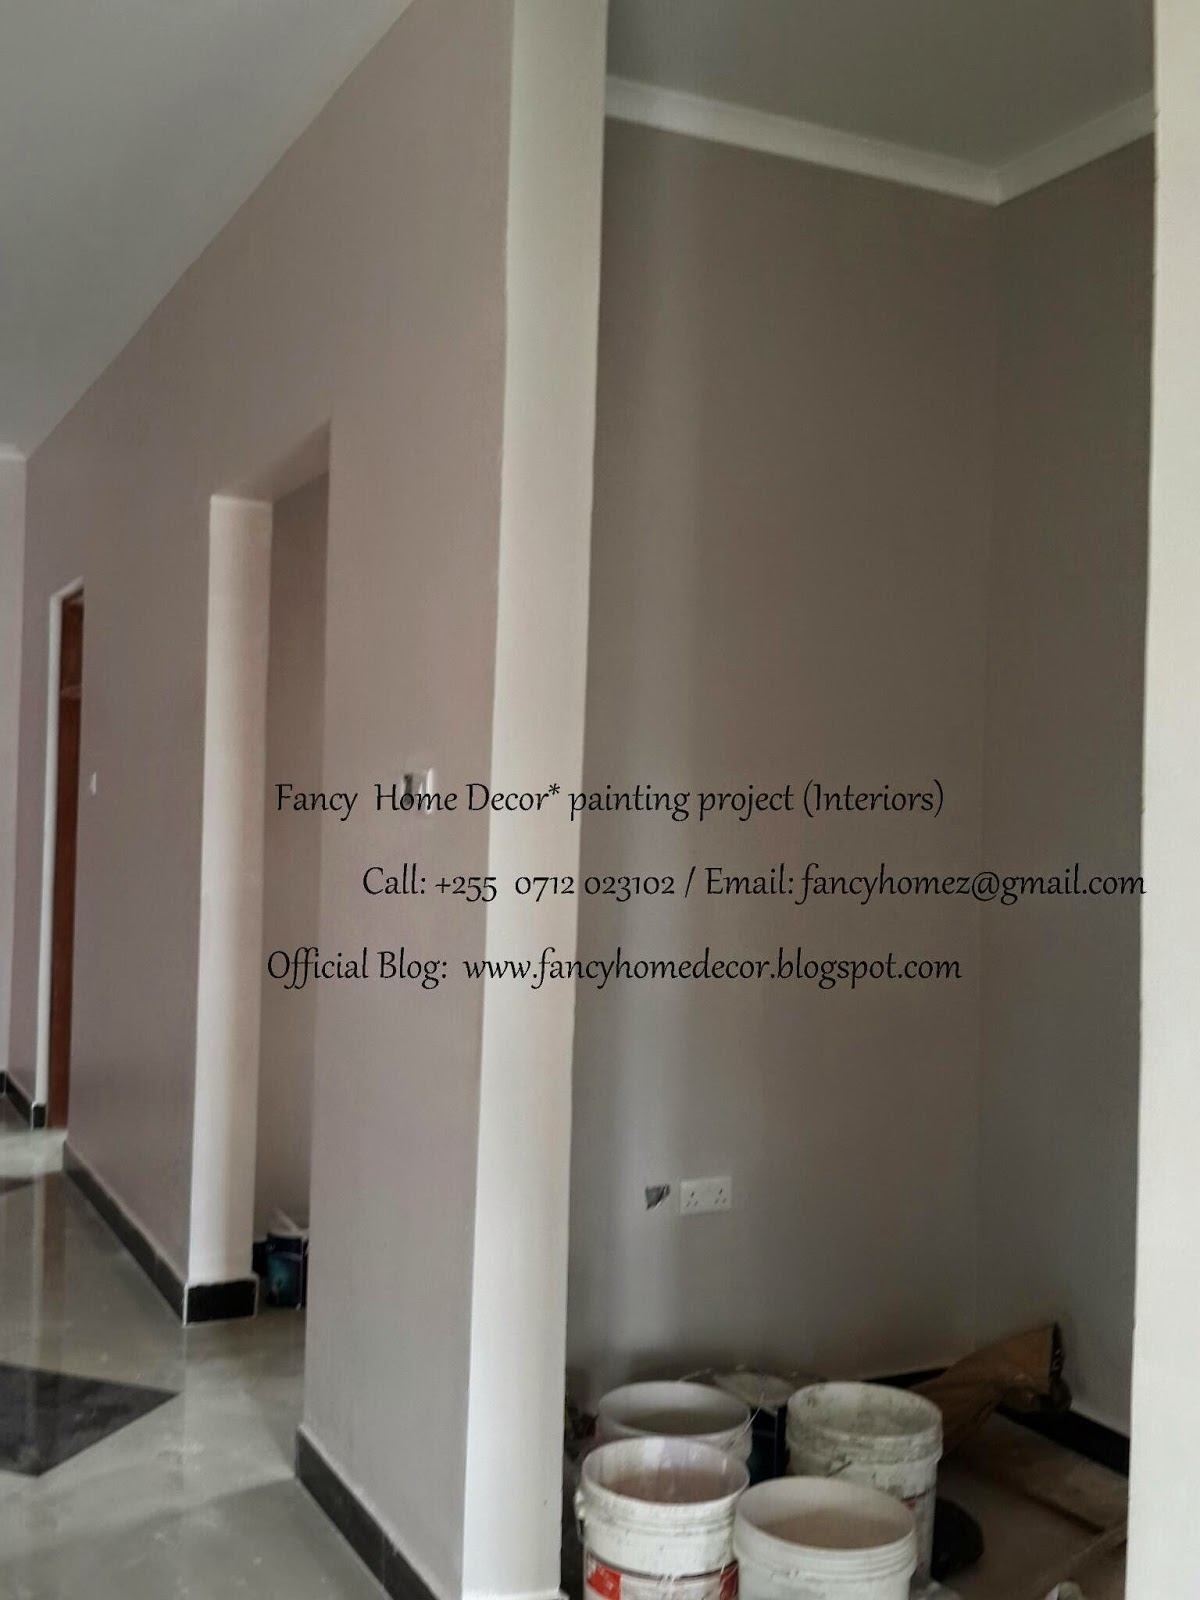 Fancy home decor my project interior paints decoration for Decoration za nyumba